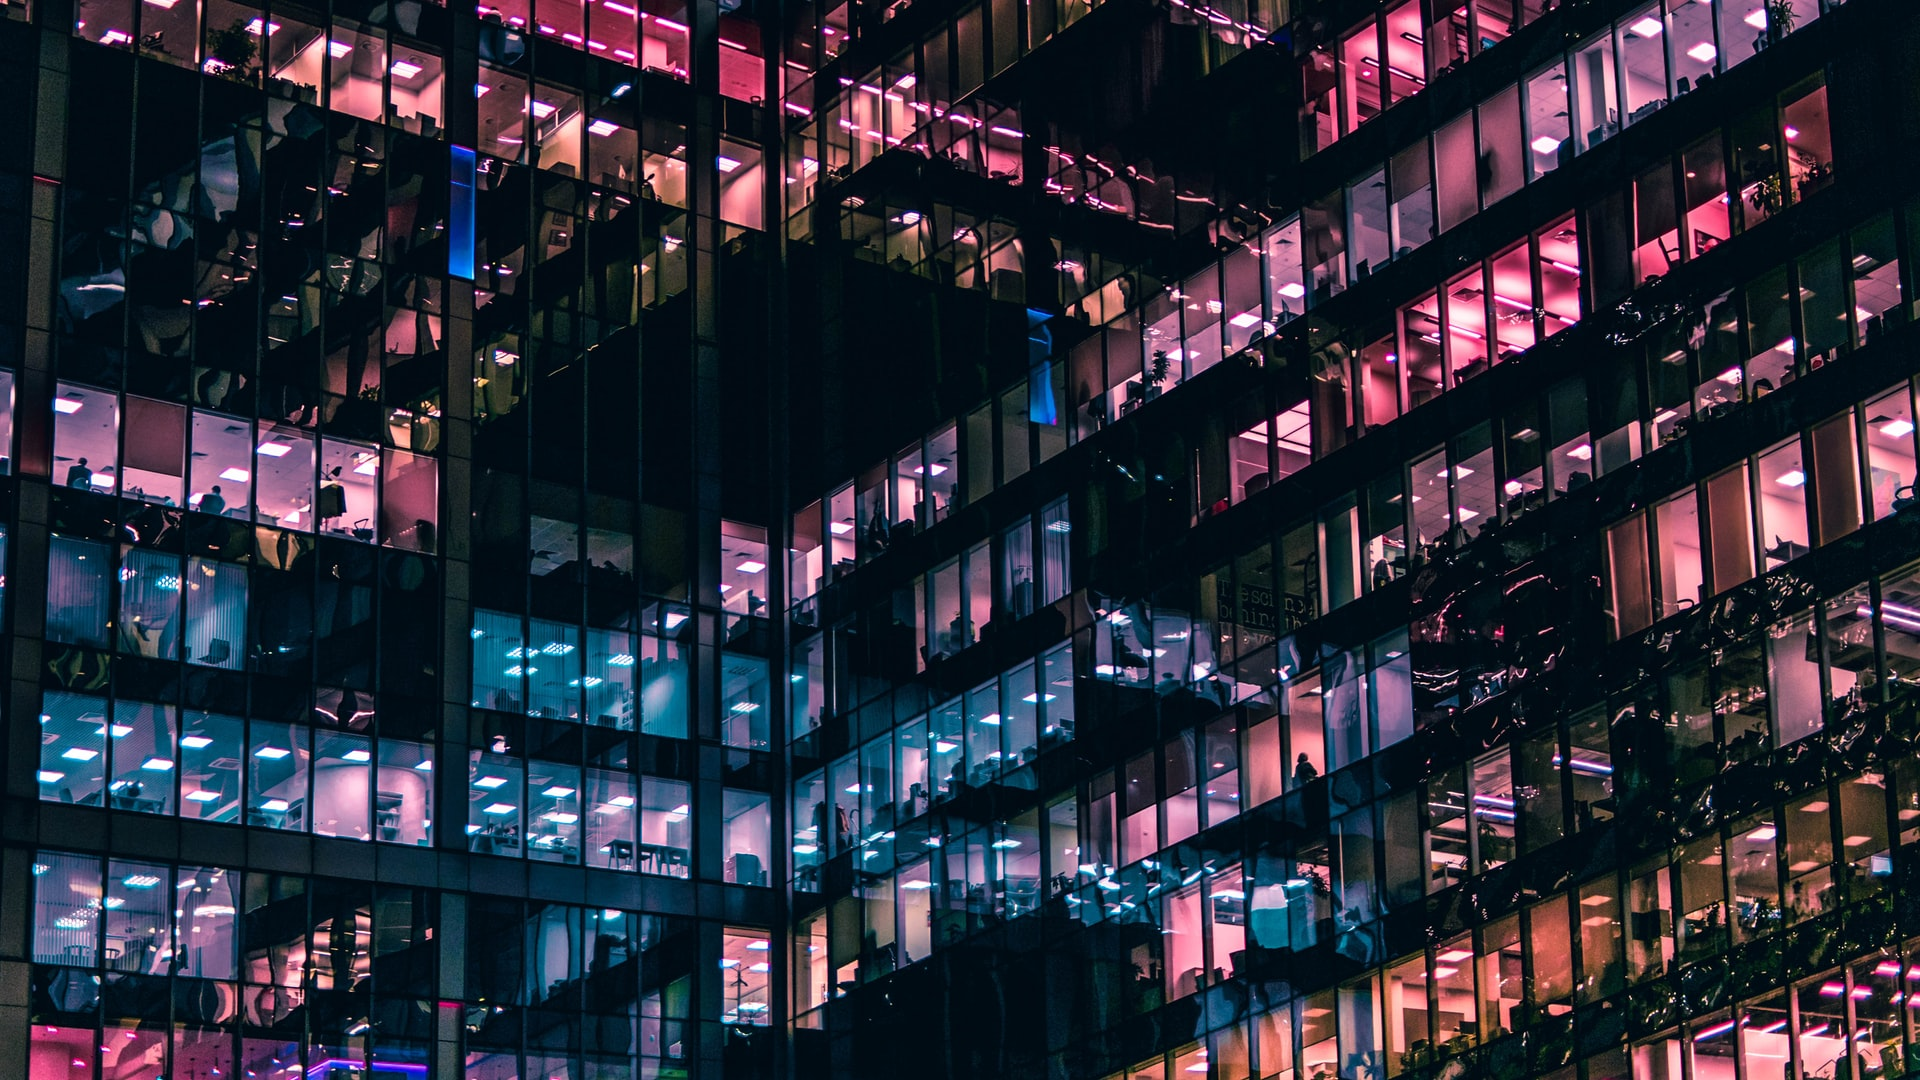 picure of a glass office building by night with pink windows showing managers working on their way up